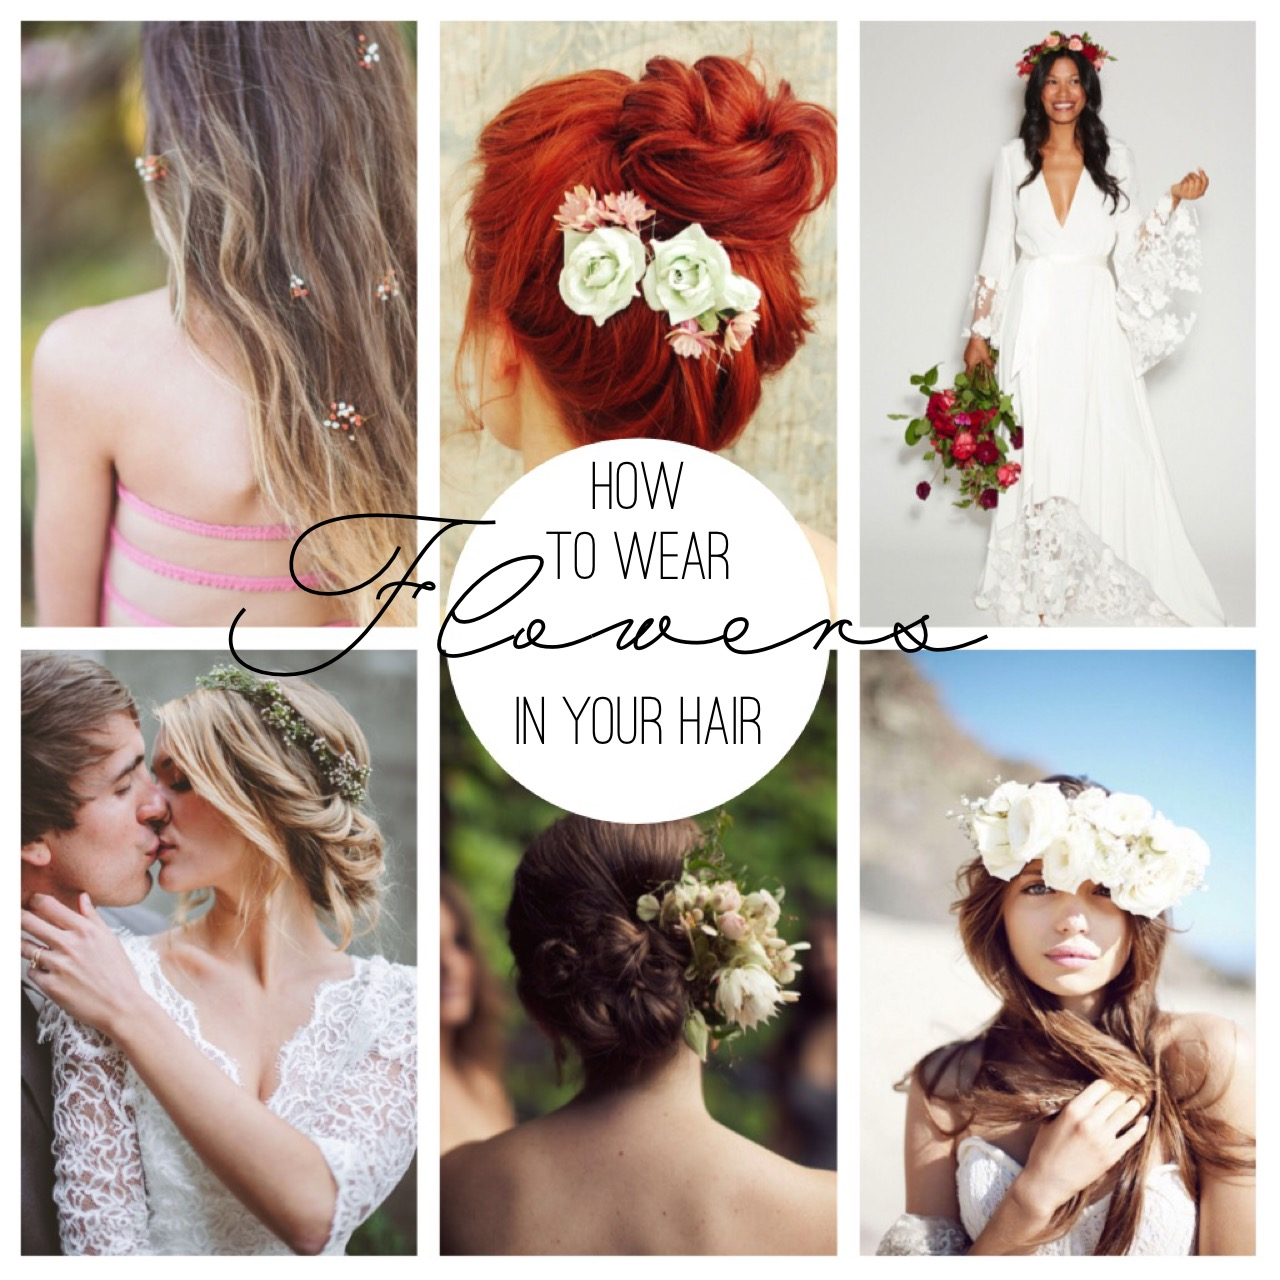 how to wear flowers in your hair for your wedding